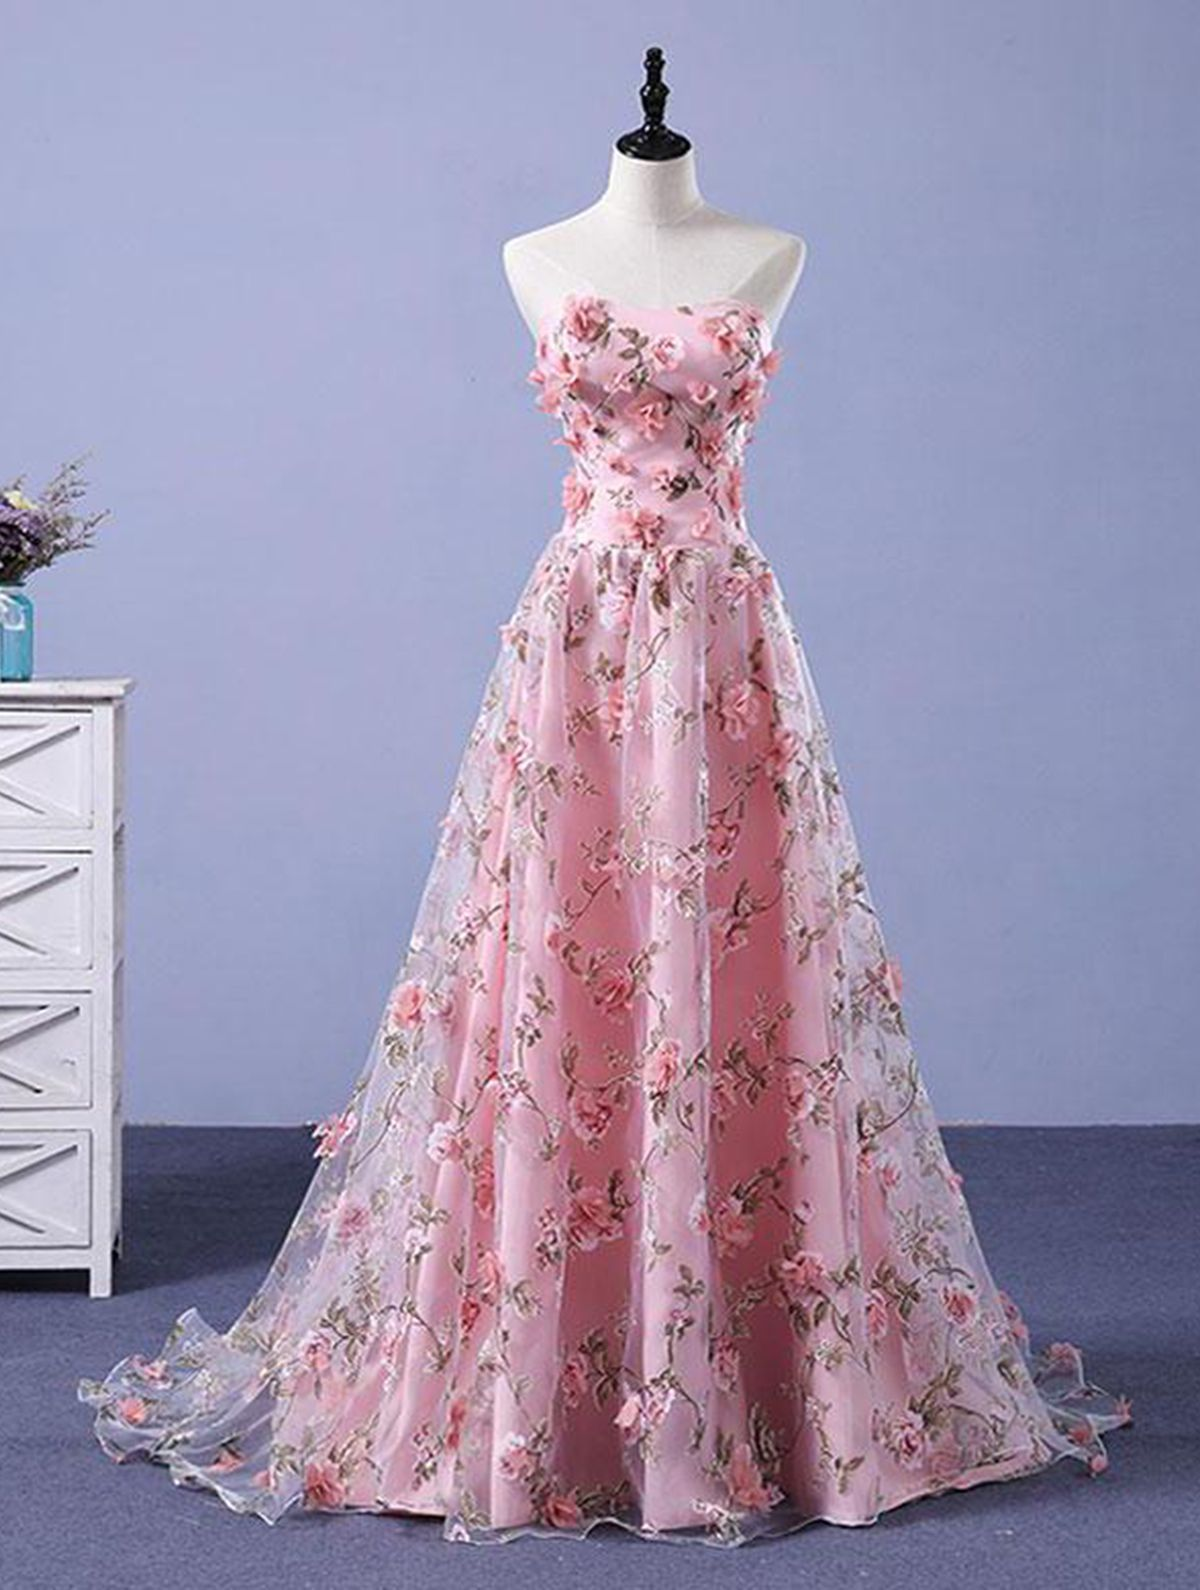 Pink foral lace strapless d flower appliques sweet prom dresses